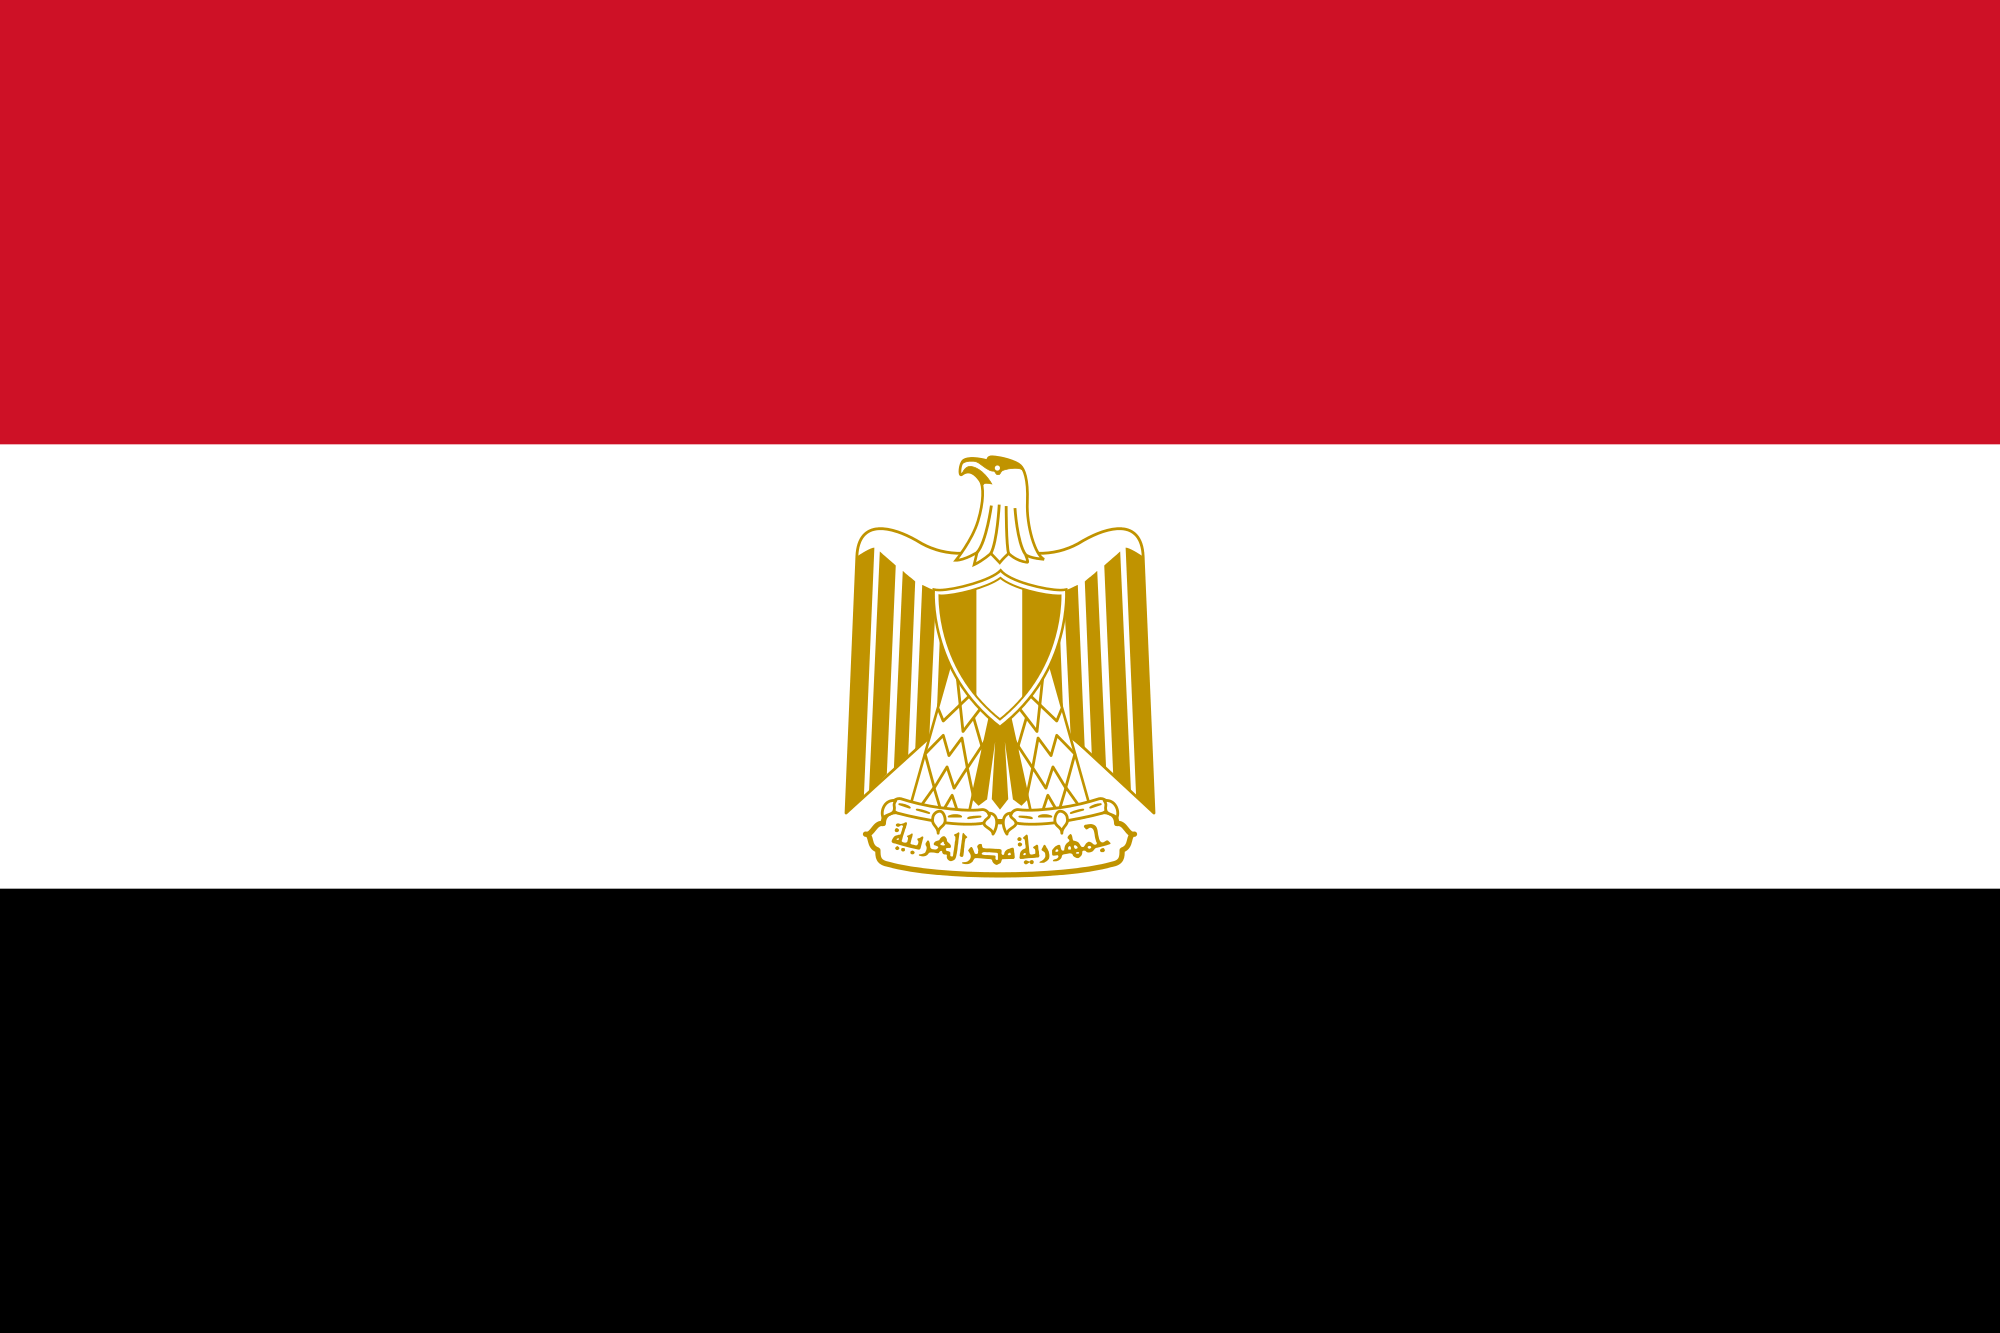 Egypt flag worldflags flag of egypt buycottarizona